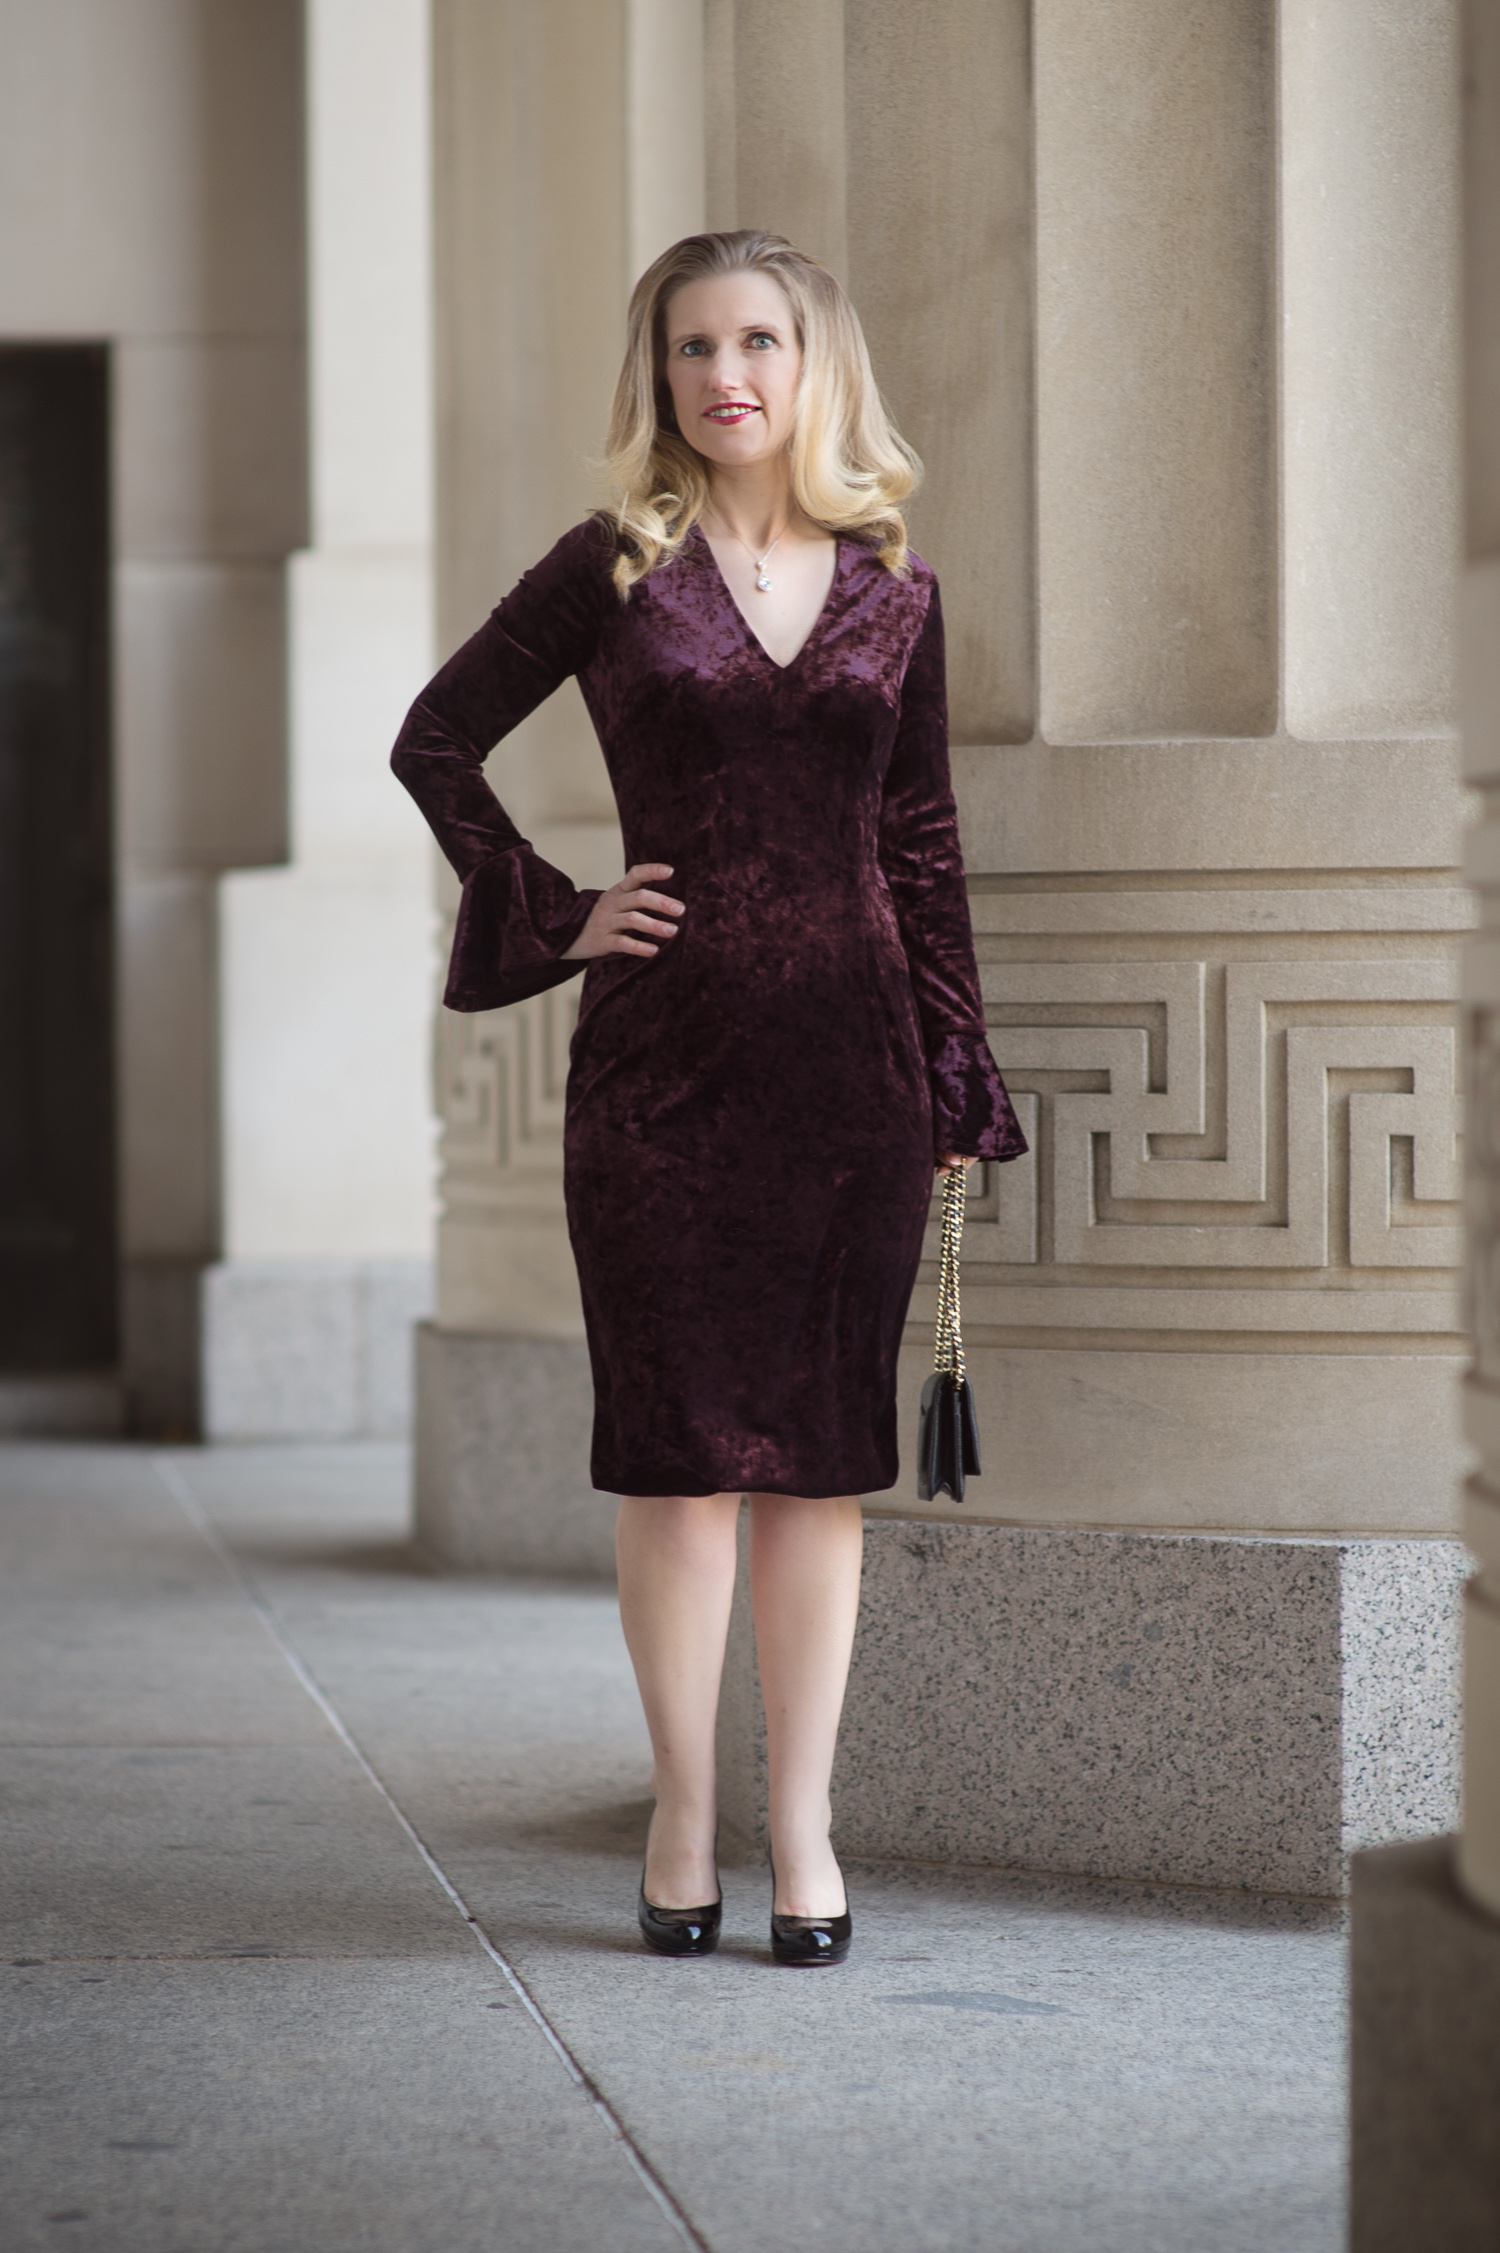 Velvet Dress Inspiration From London Times The Blue